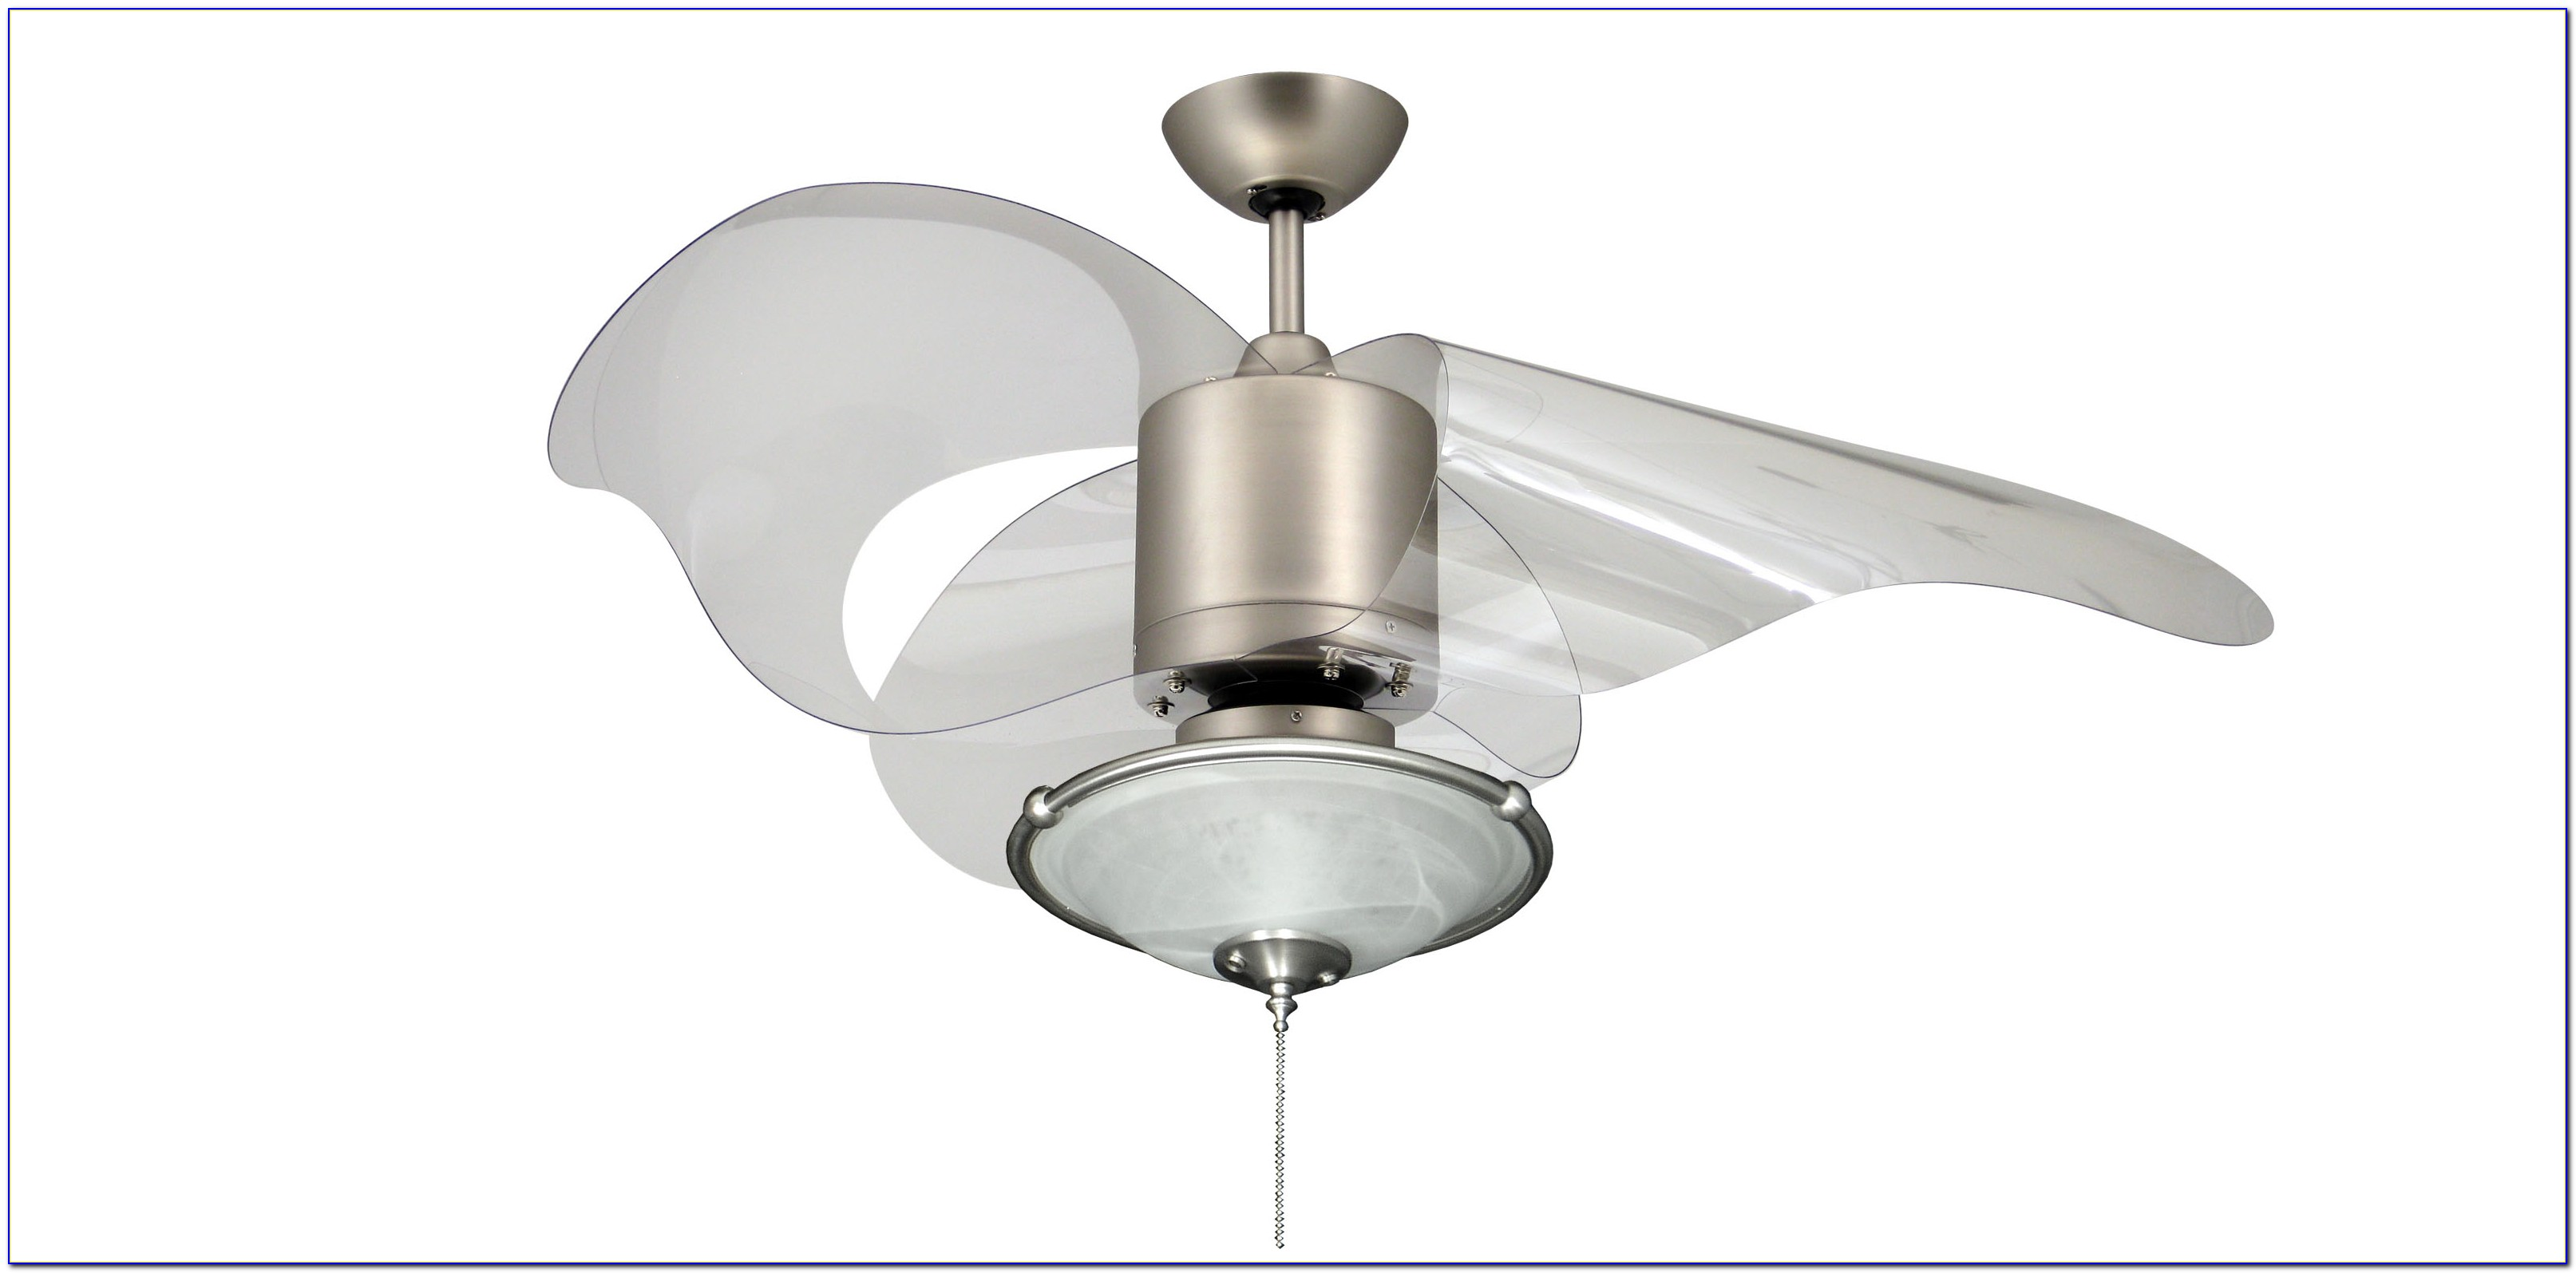 Hampton Bay Ceiling Fan Clear Blades